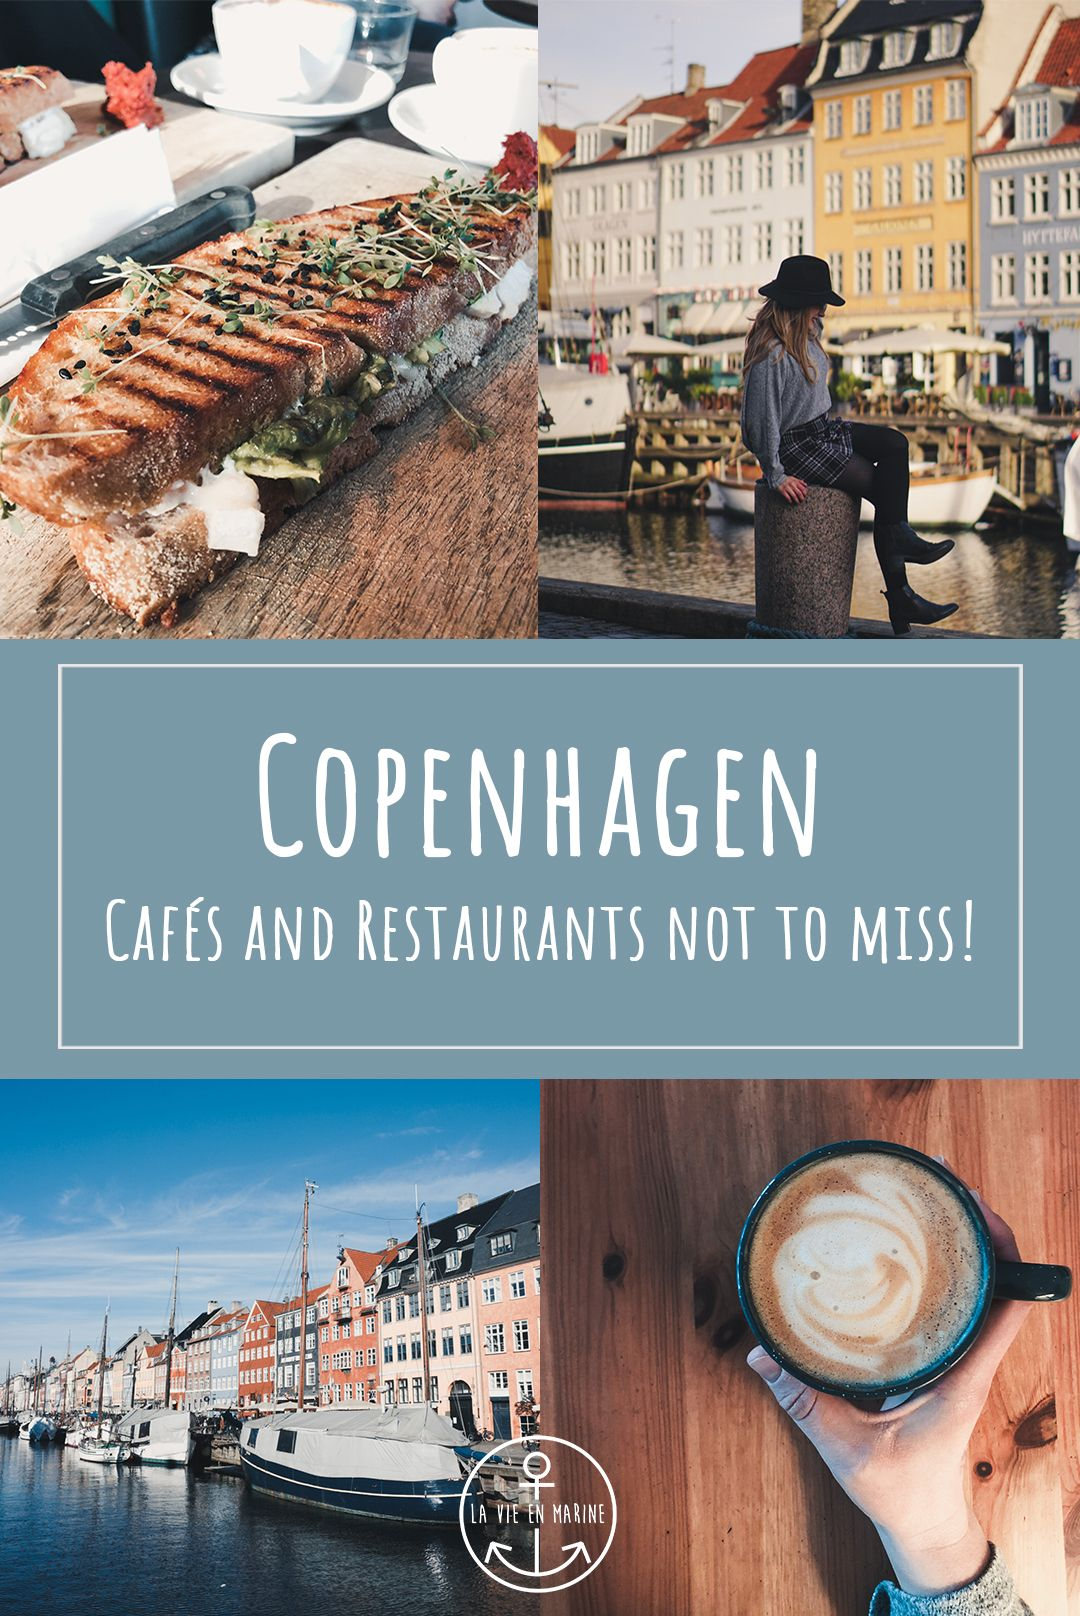 Copenhagen offers some of the best cafés I have ever been to! They are cozy, chic and stylish! #denmark #copenhagen #hyggehome #hyggelife #hyggelifestyle #hyggehabits denmark, denmark copenhagen, denmark culture, denmark photography, denmark living, denmark hygge, denmark food, things to do in denmark, things to do in copenhagen, copenhagen denmark, copenhagen travel, copenhagen food, copenhagen cafe, copenhagen hygge, copenhagen tipps, copenhagen nyhavn, copenhagen city trip,